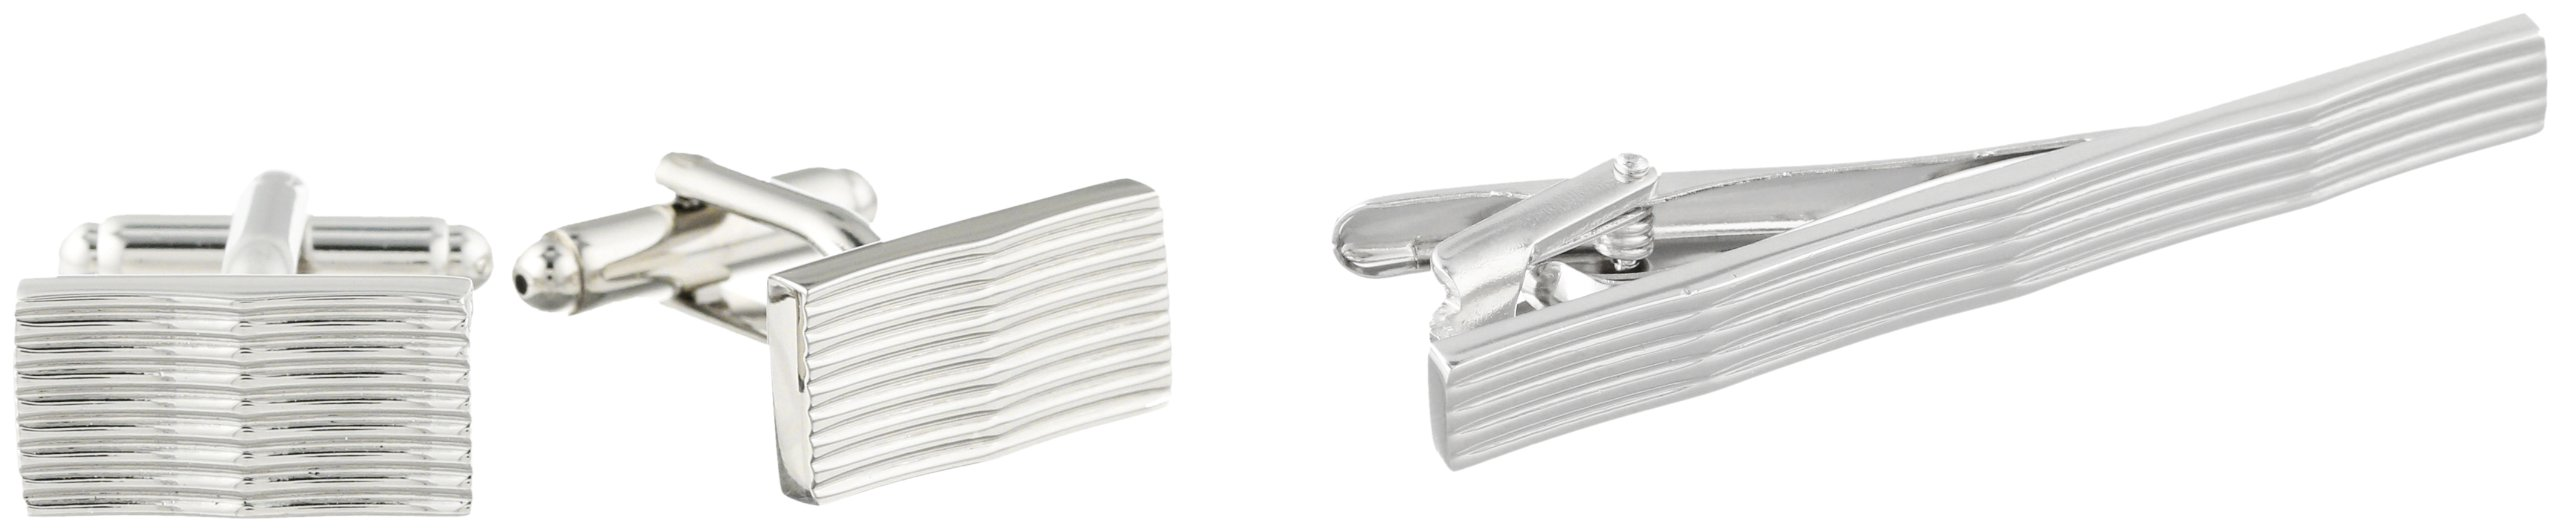 Stacy Adams Men's Cuff Link and Tie Bar With Ridges Set, Silver, One Size